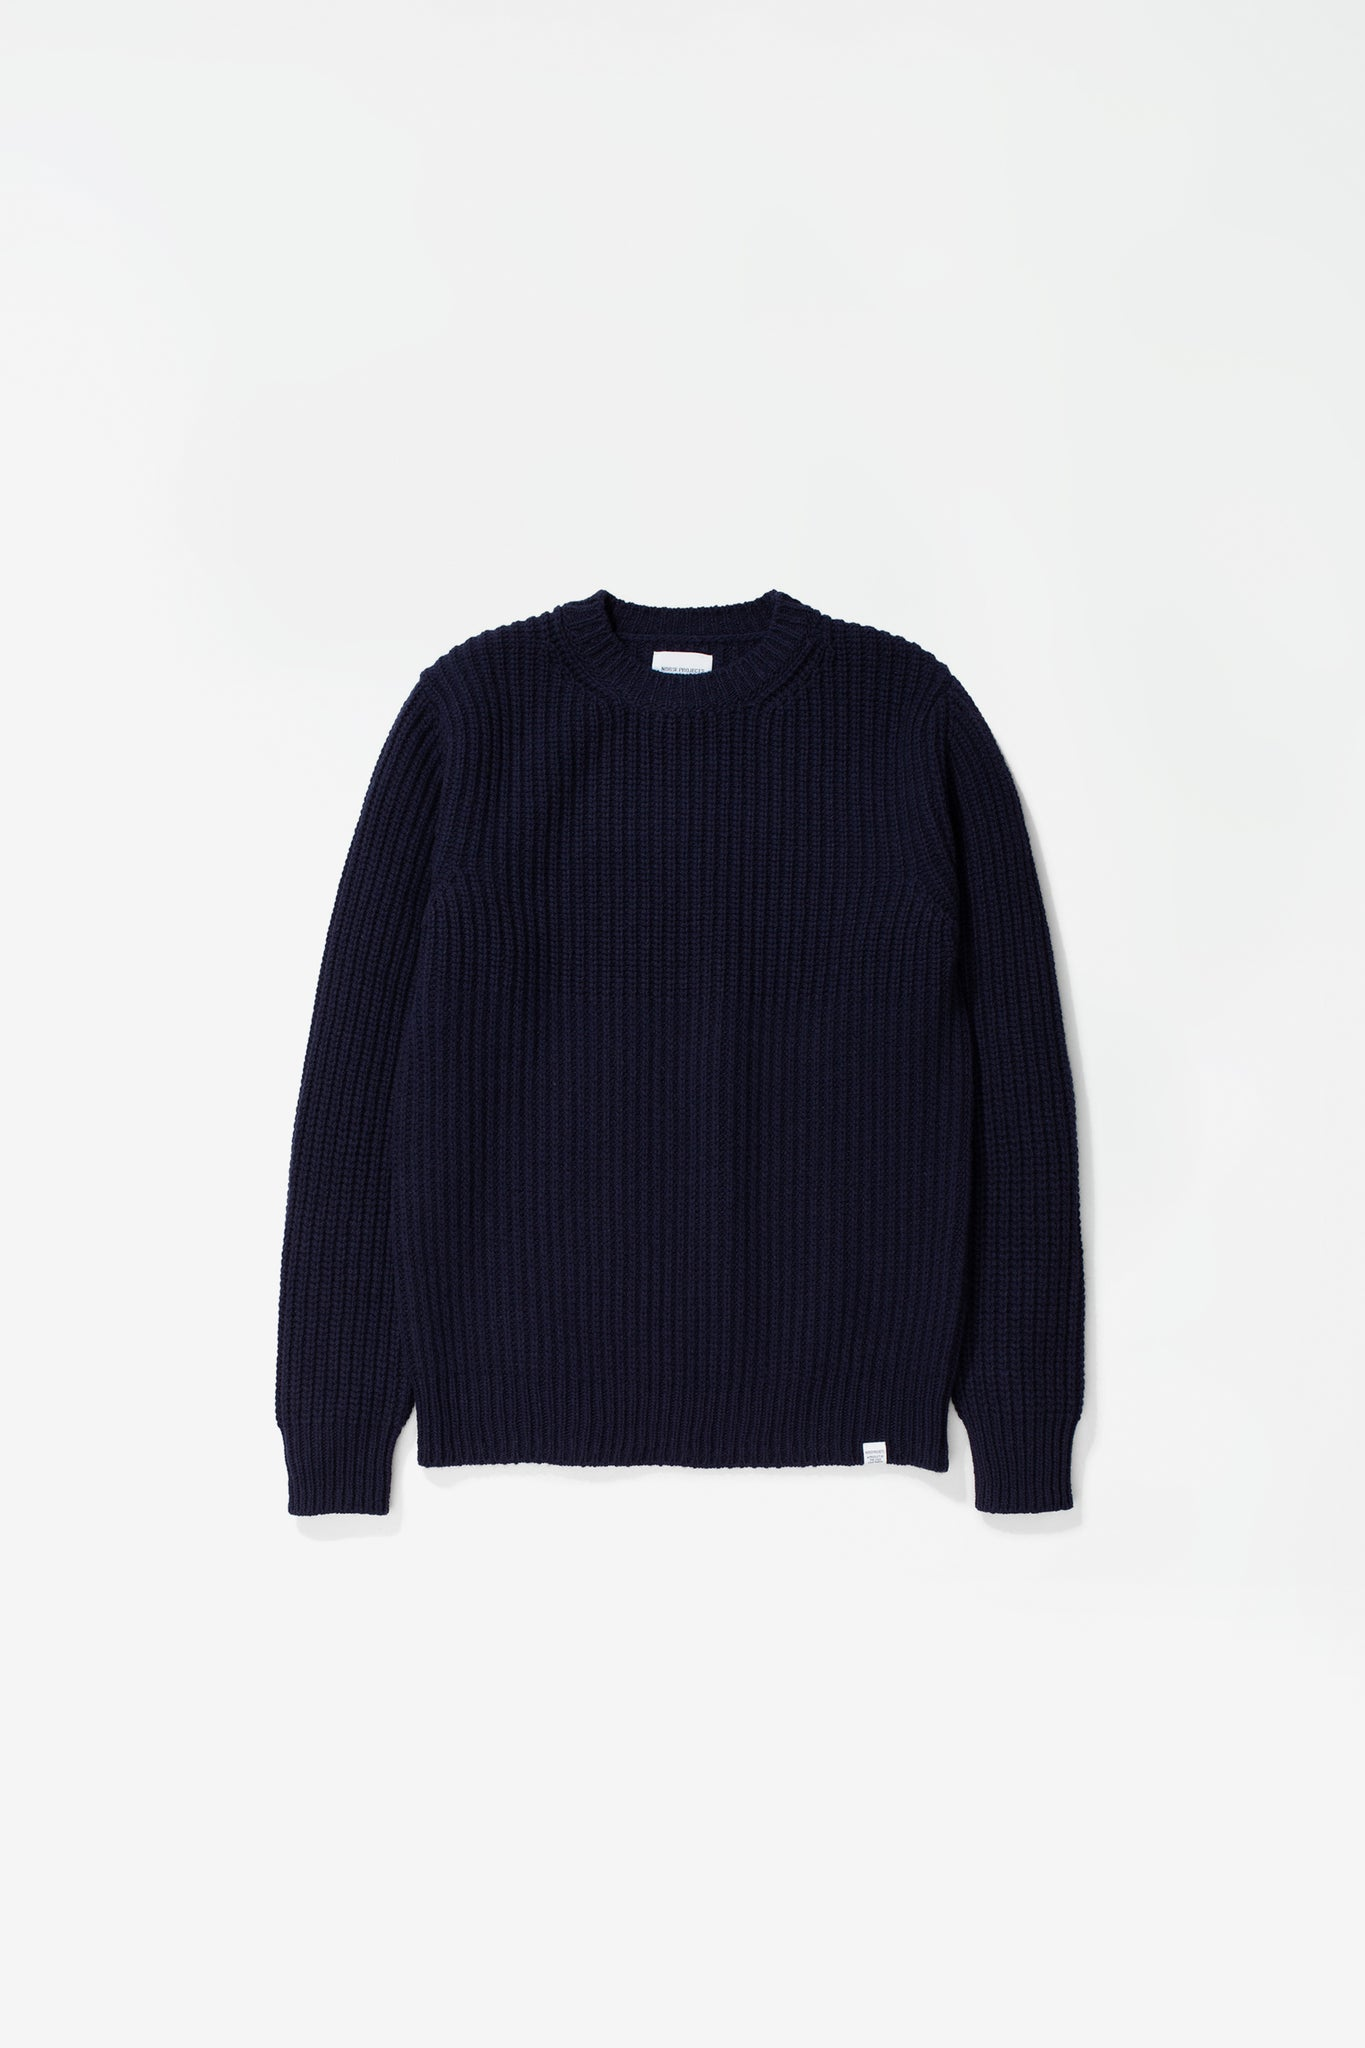 Viggo military stitch crewneck dark navy